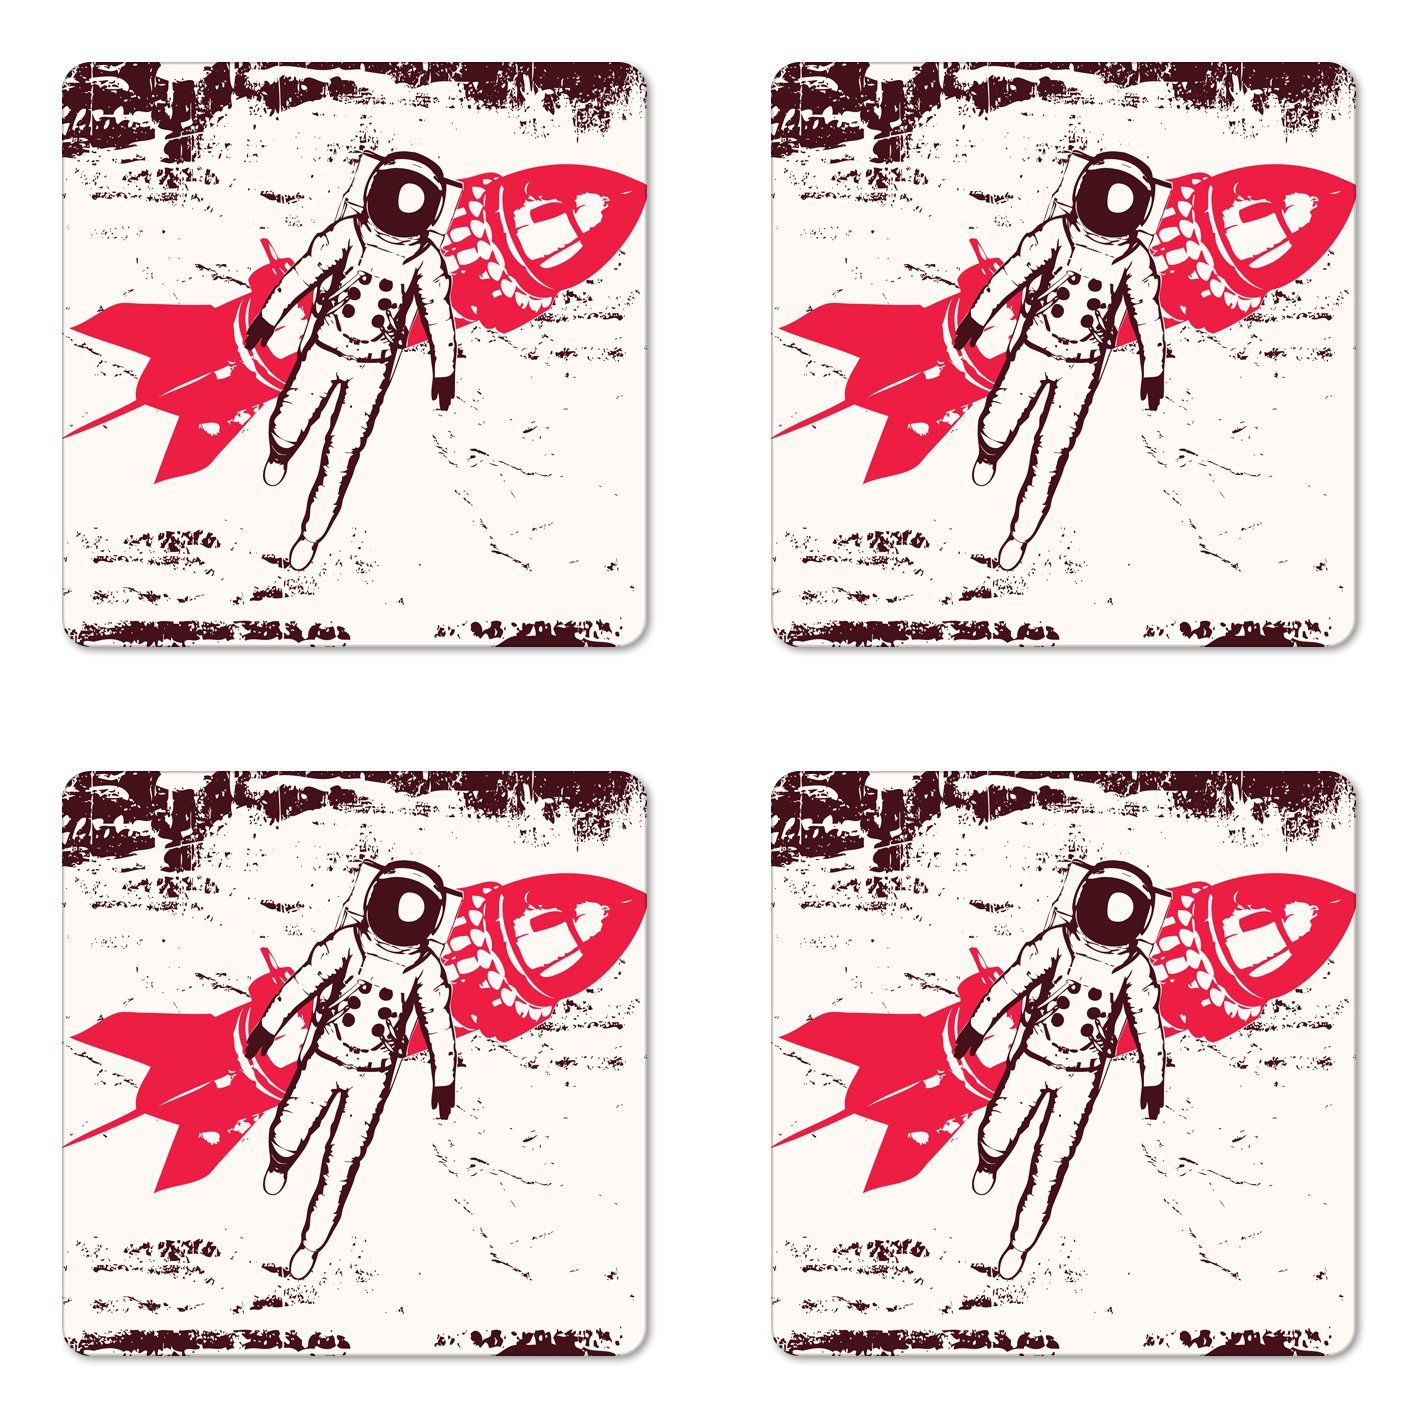 Lunarable Vintage Coaster Set of Four, Retro Space Travel Astronaut Over Planet Earth Original Solar Futuristic Art, Square Hardboard Gloss Coasters for Drinks, Hot Pink Maroon